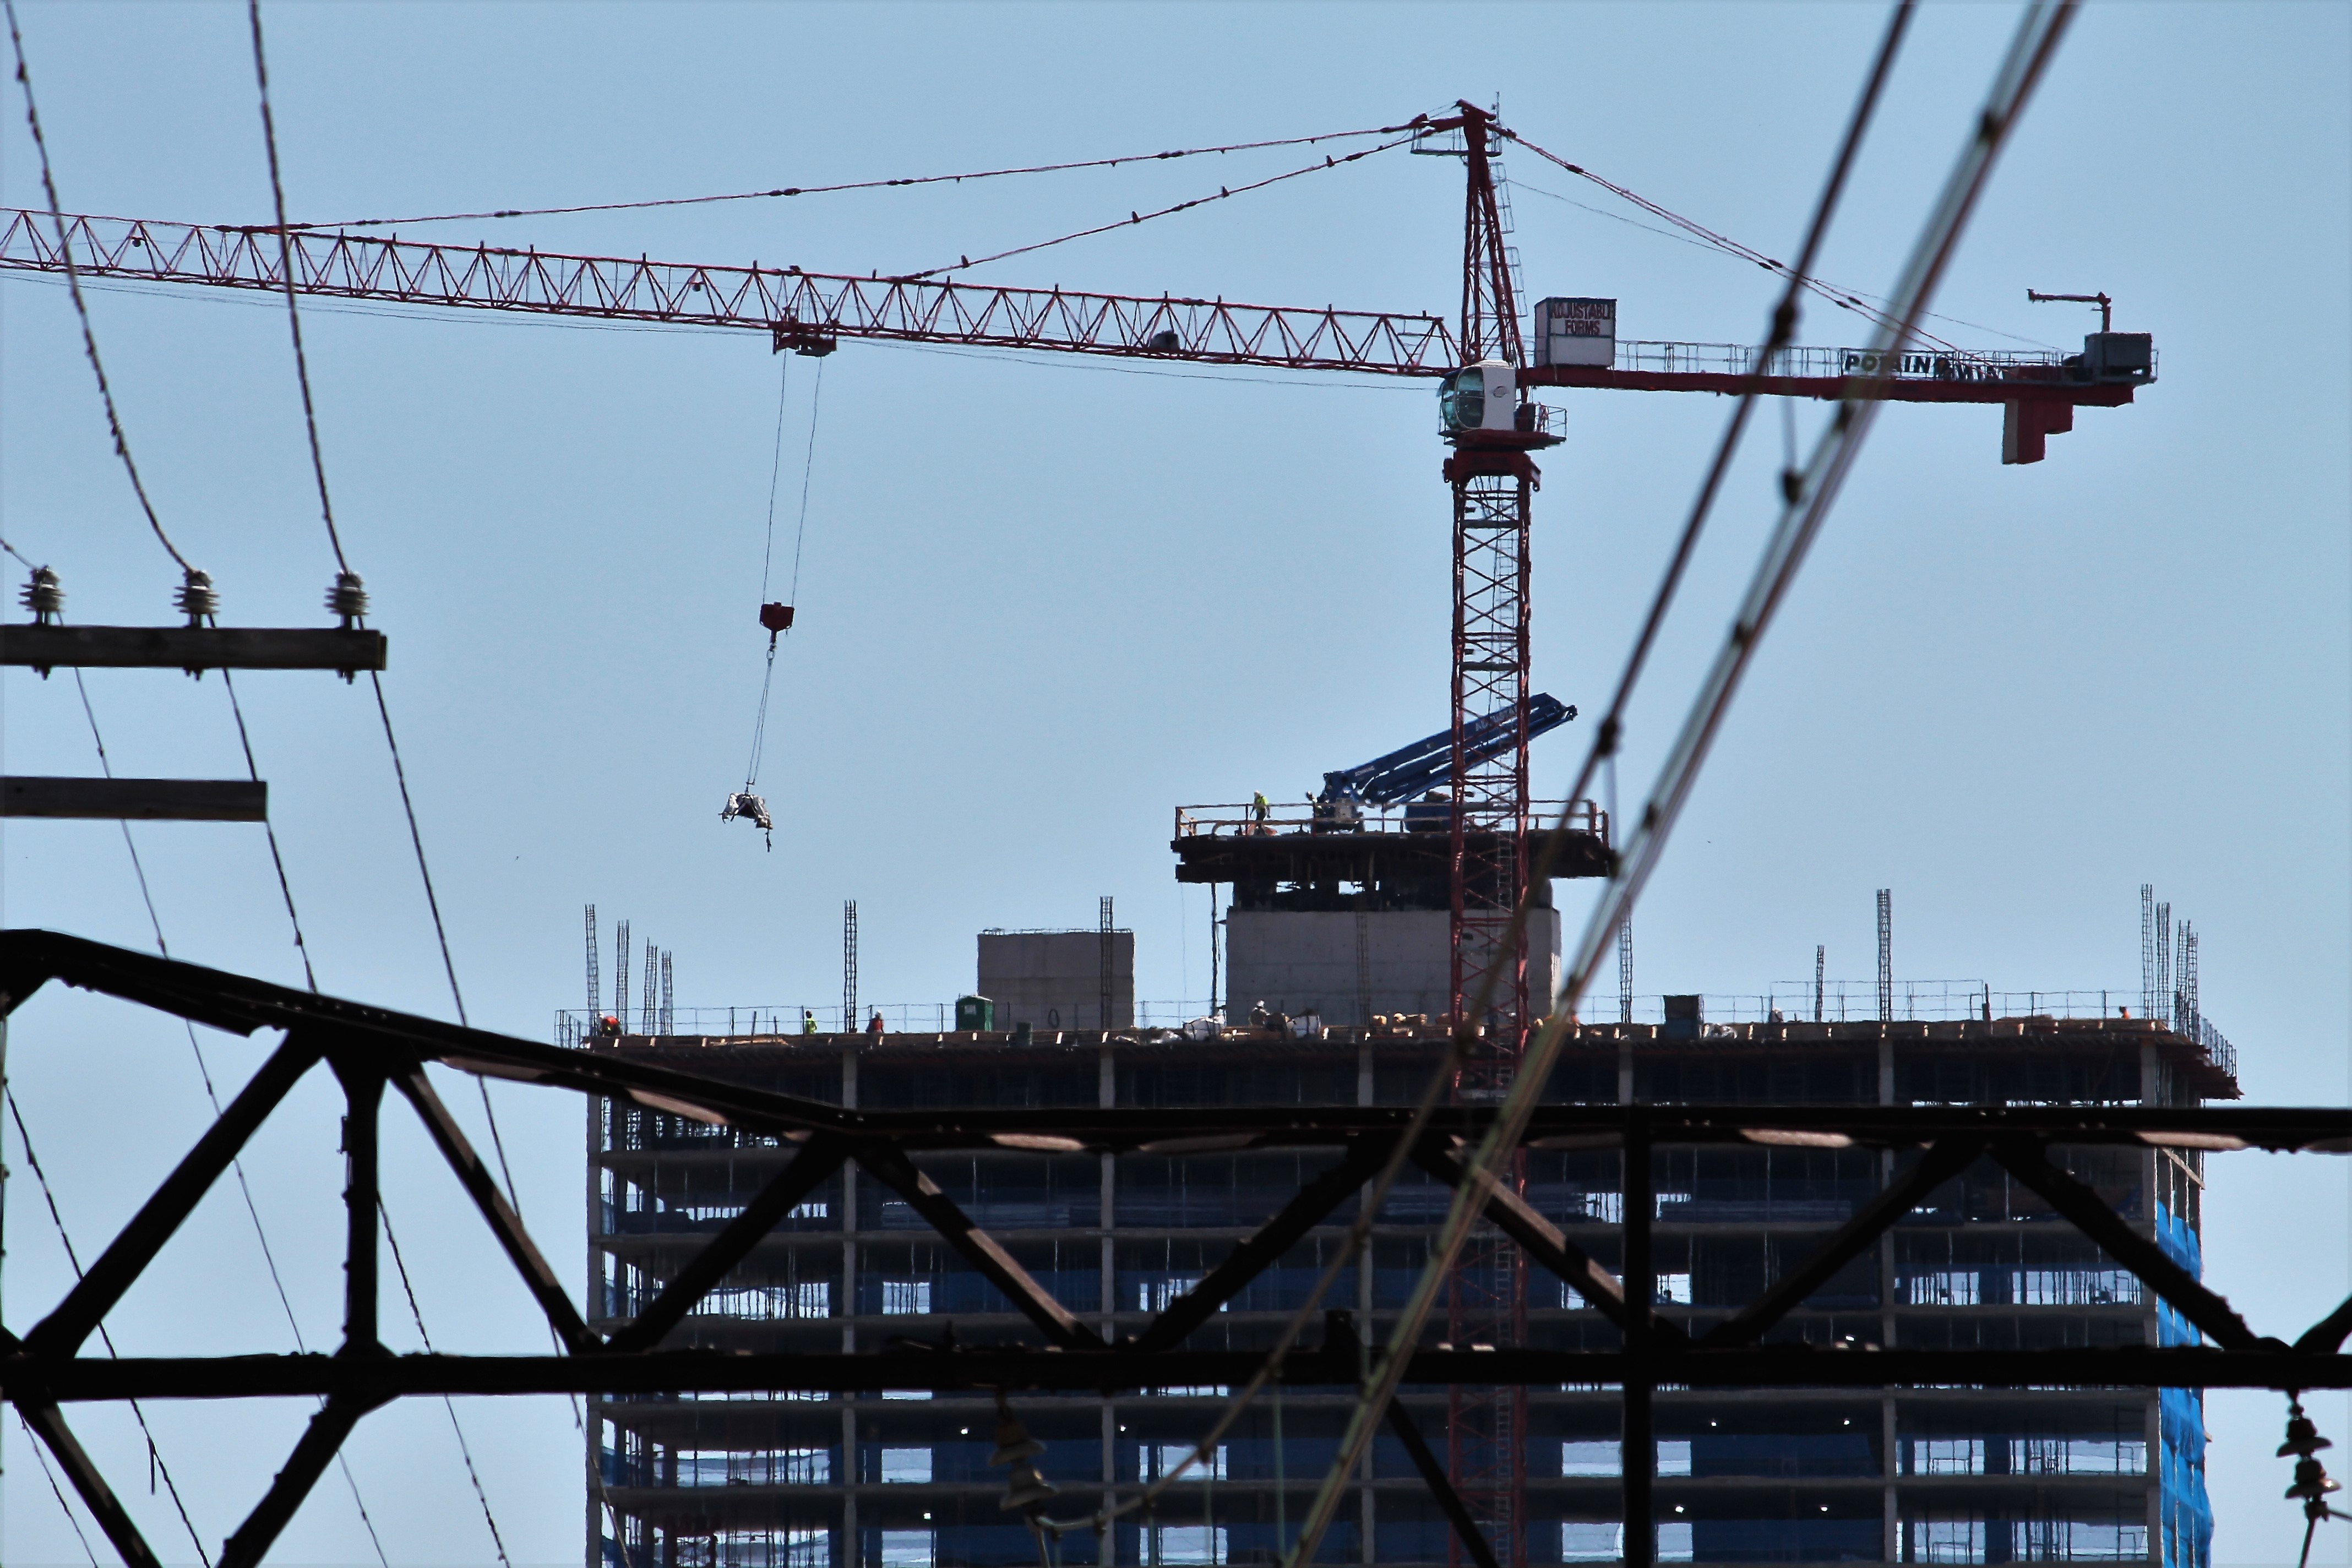 Solstice On The Park tower crane